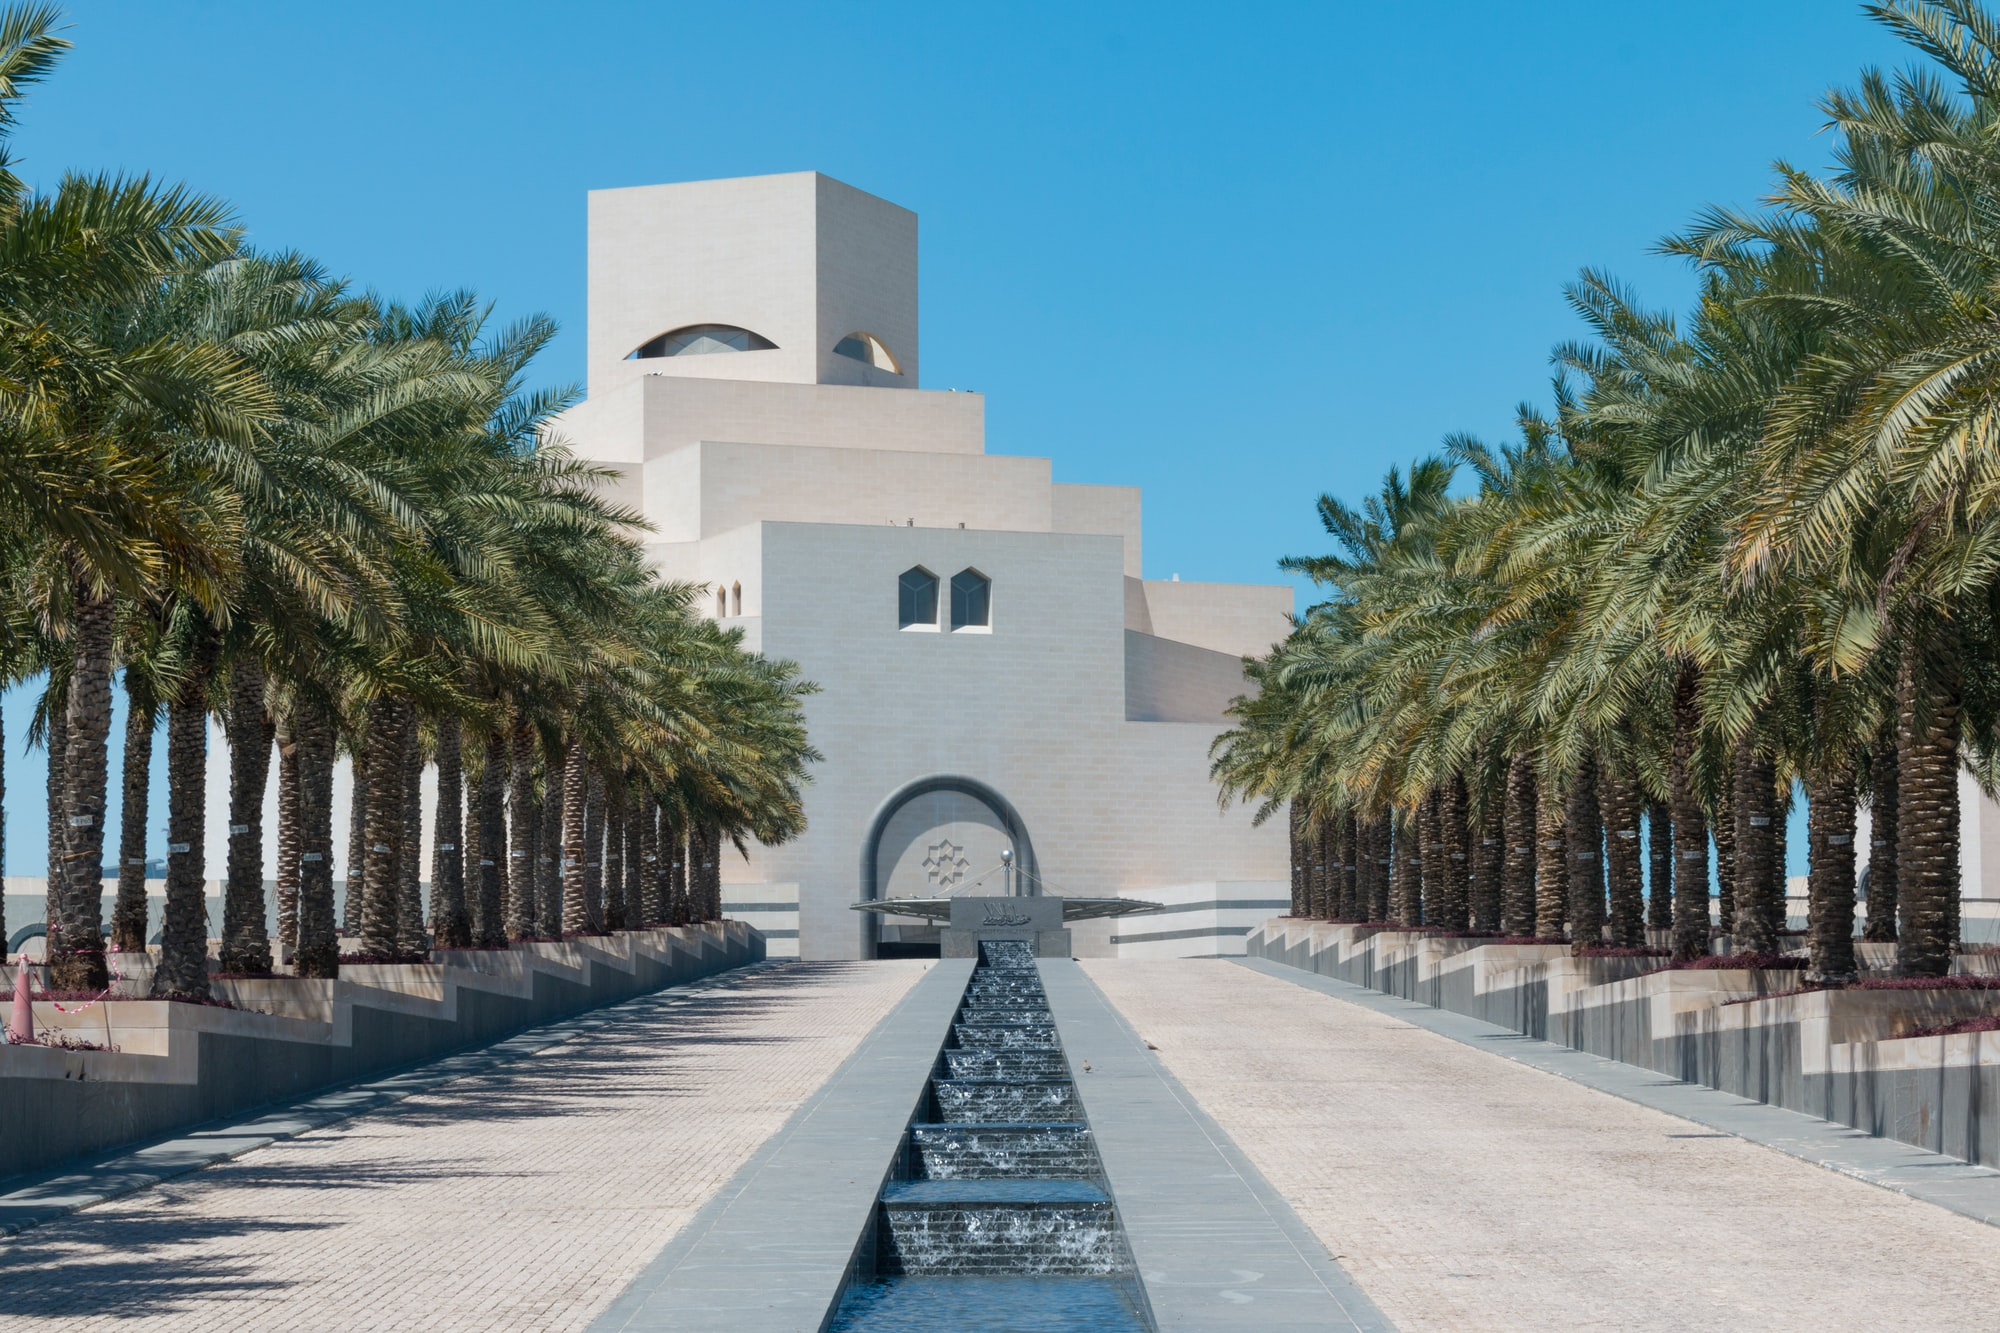 The Museum of Islamic Art is a museum on one end of the seven-kilometer-long Corniche in Doha, Qatar.